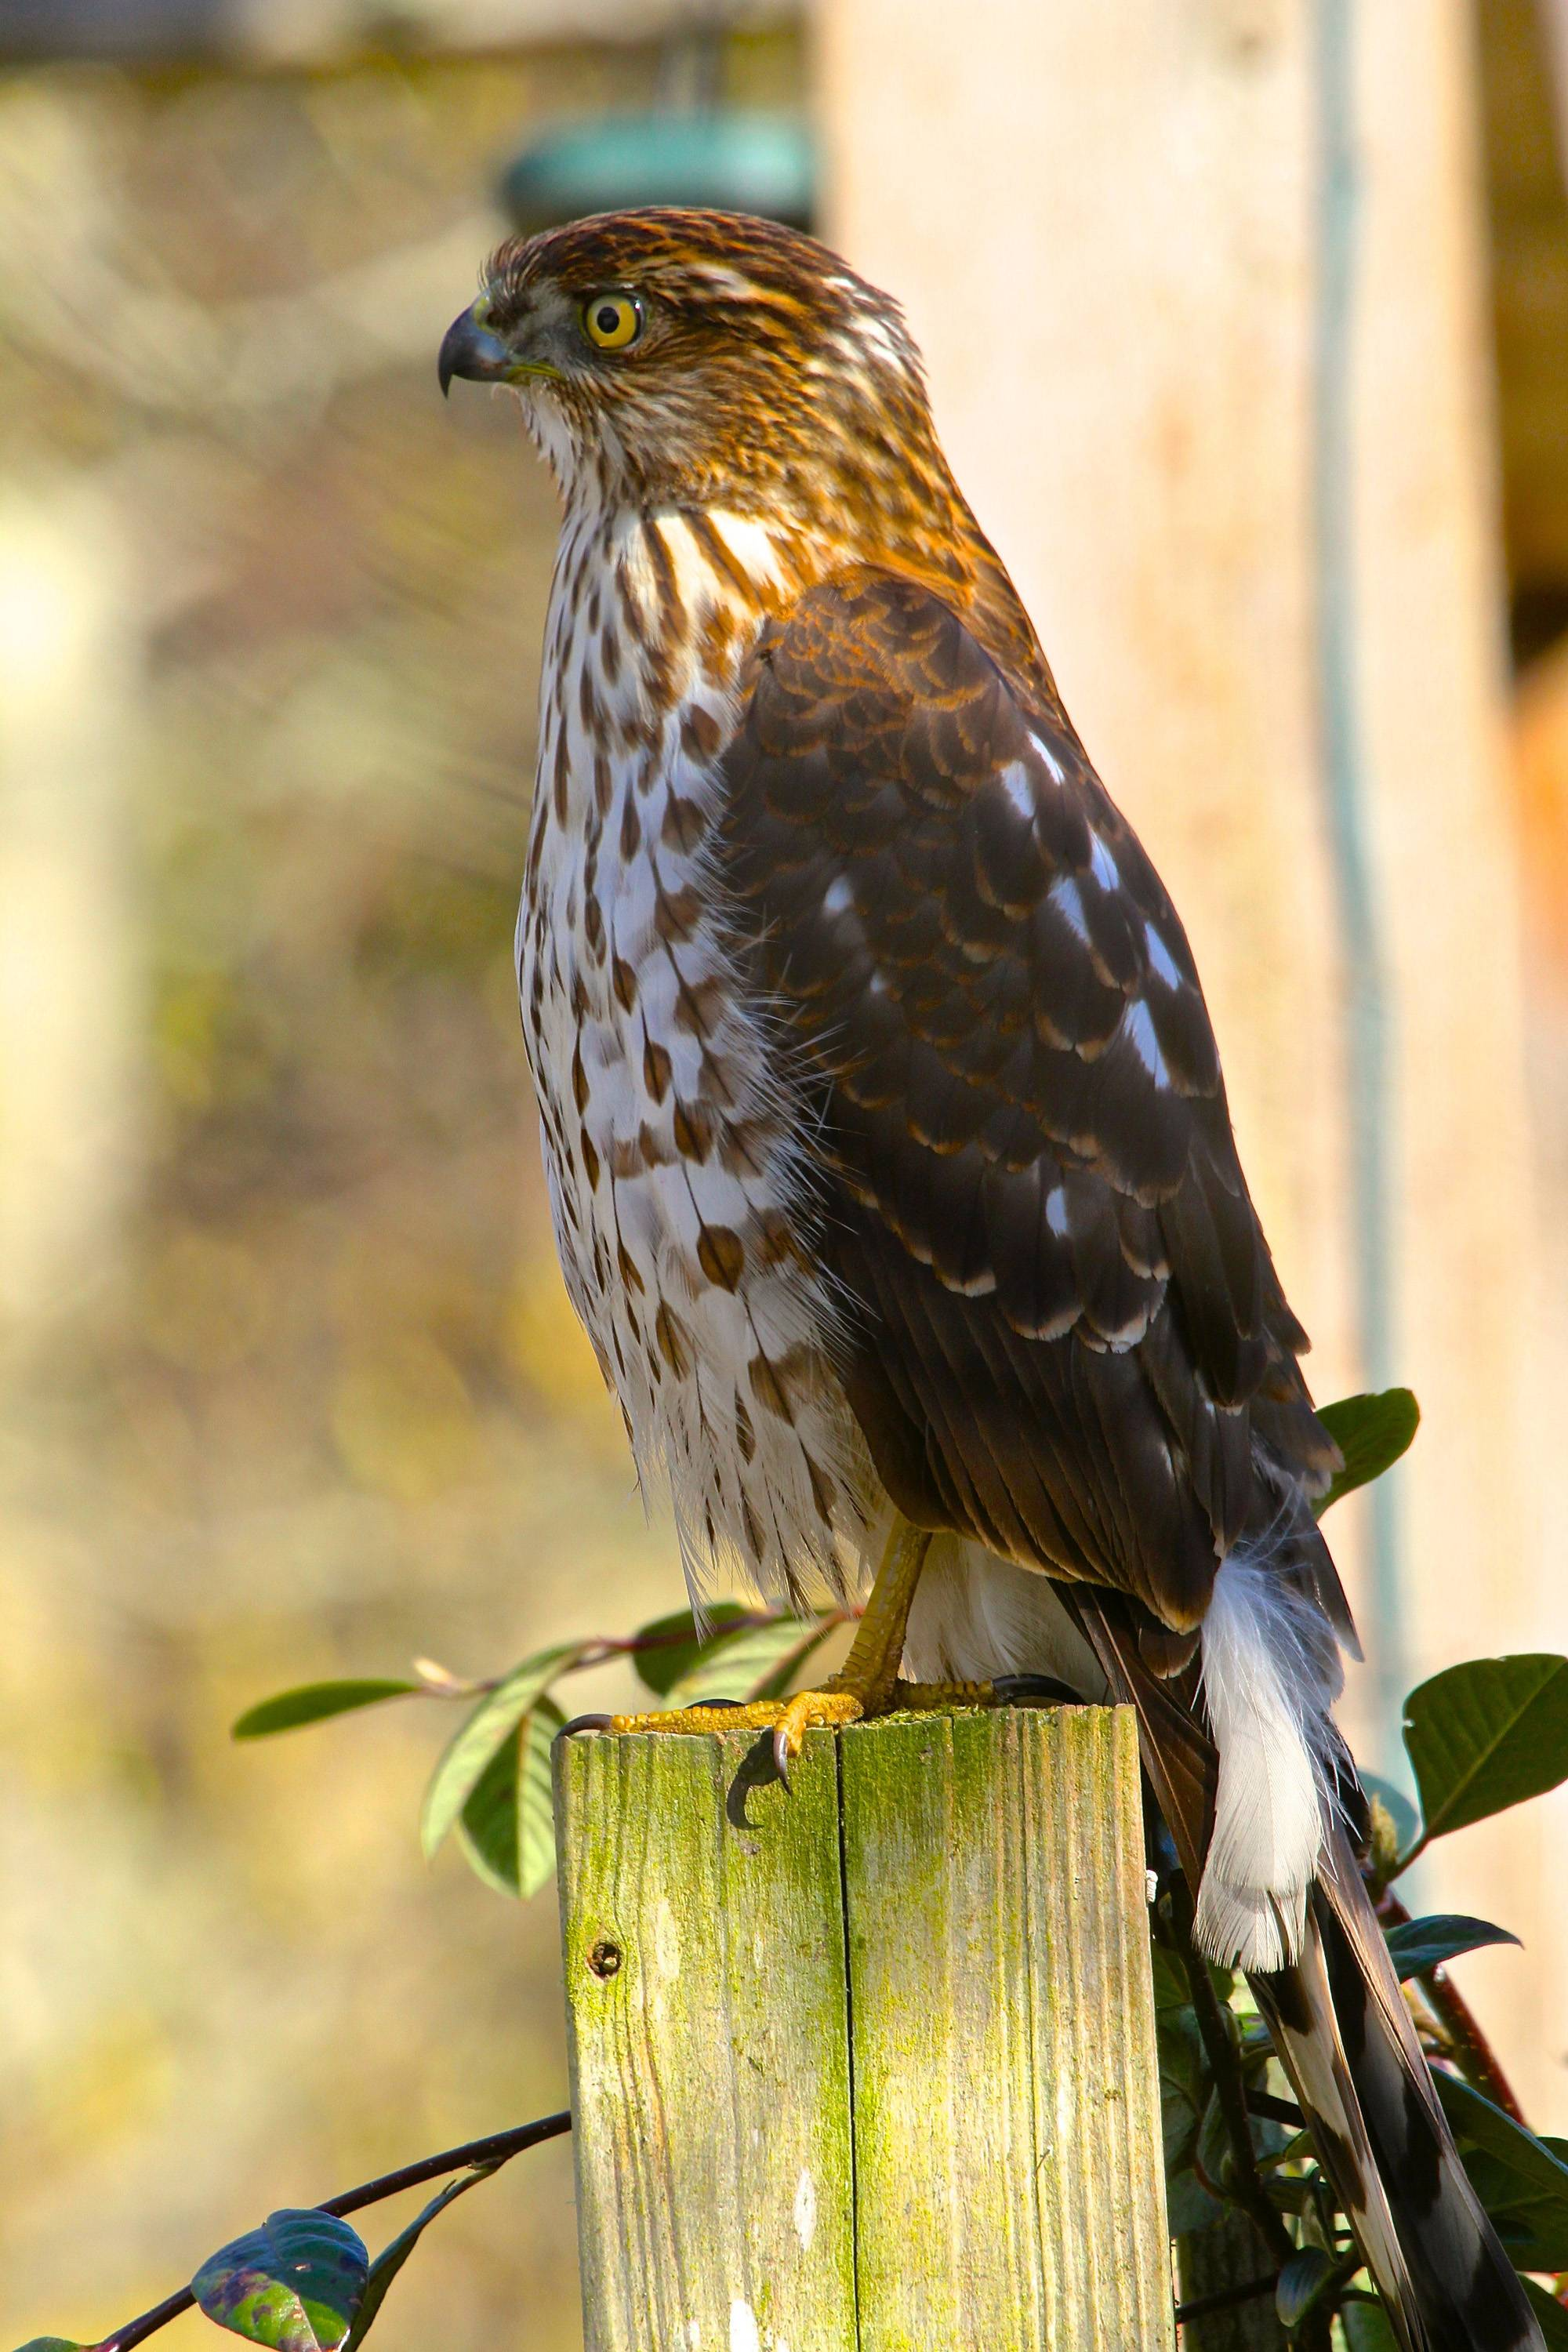 This Cooper's Hawk was an uninvited visitor who arrived at a residence shortly after some songbirds responded to birdcall playback from a smartphone. These hawks frequently hunt smaller birds that flock to home feeders.